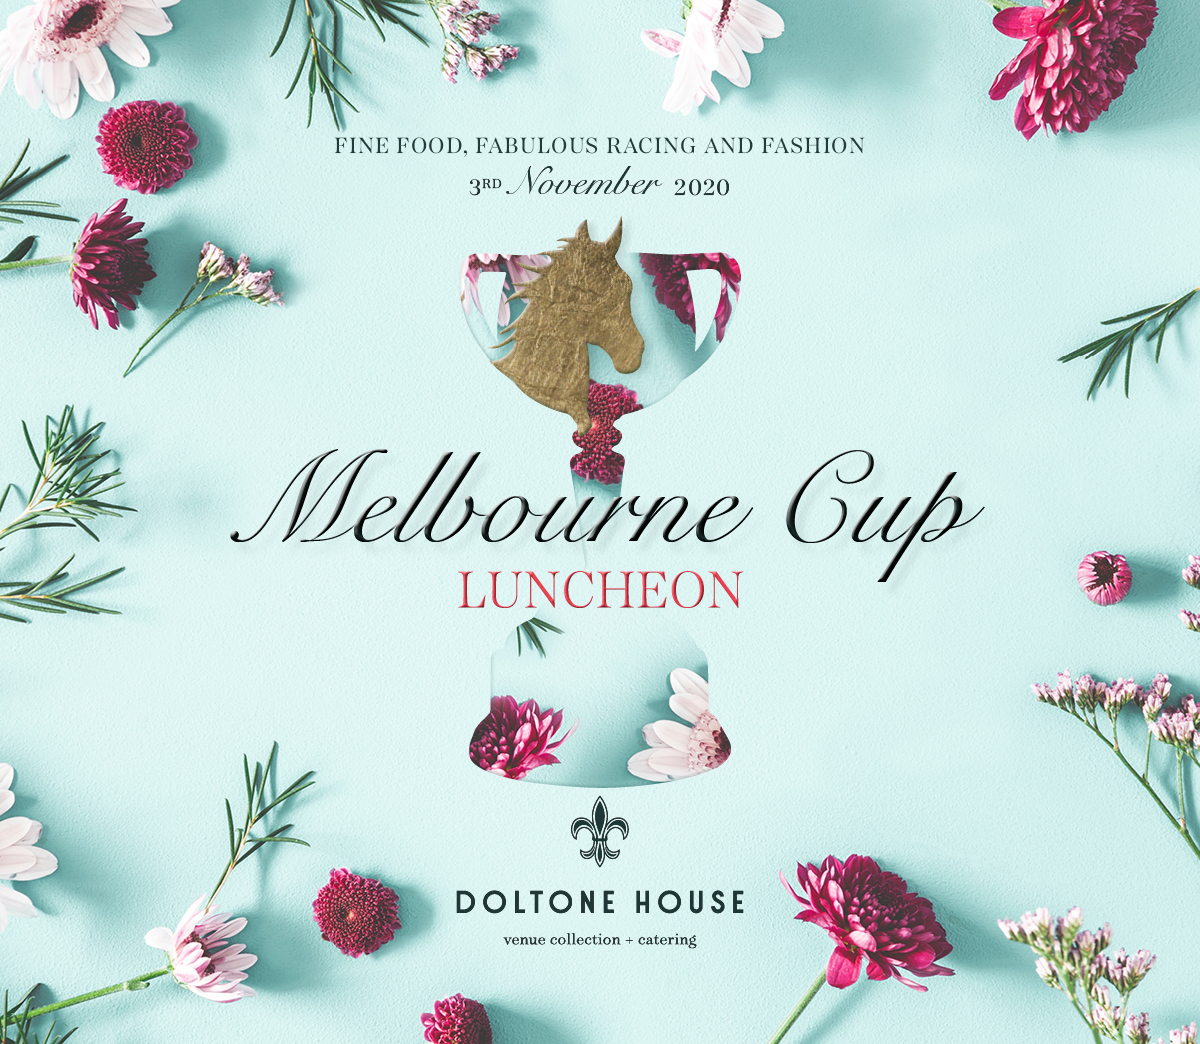 Tickets for Melbourne Cup Luncheon @ Hyde Park - 2020 in Sydney from Ticketbooth